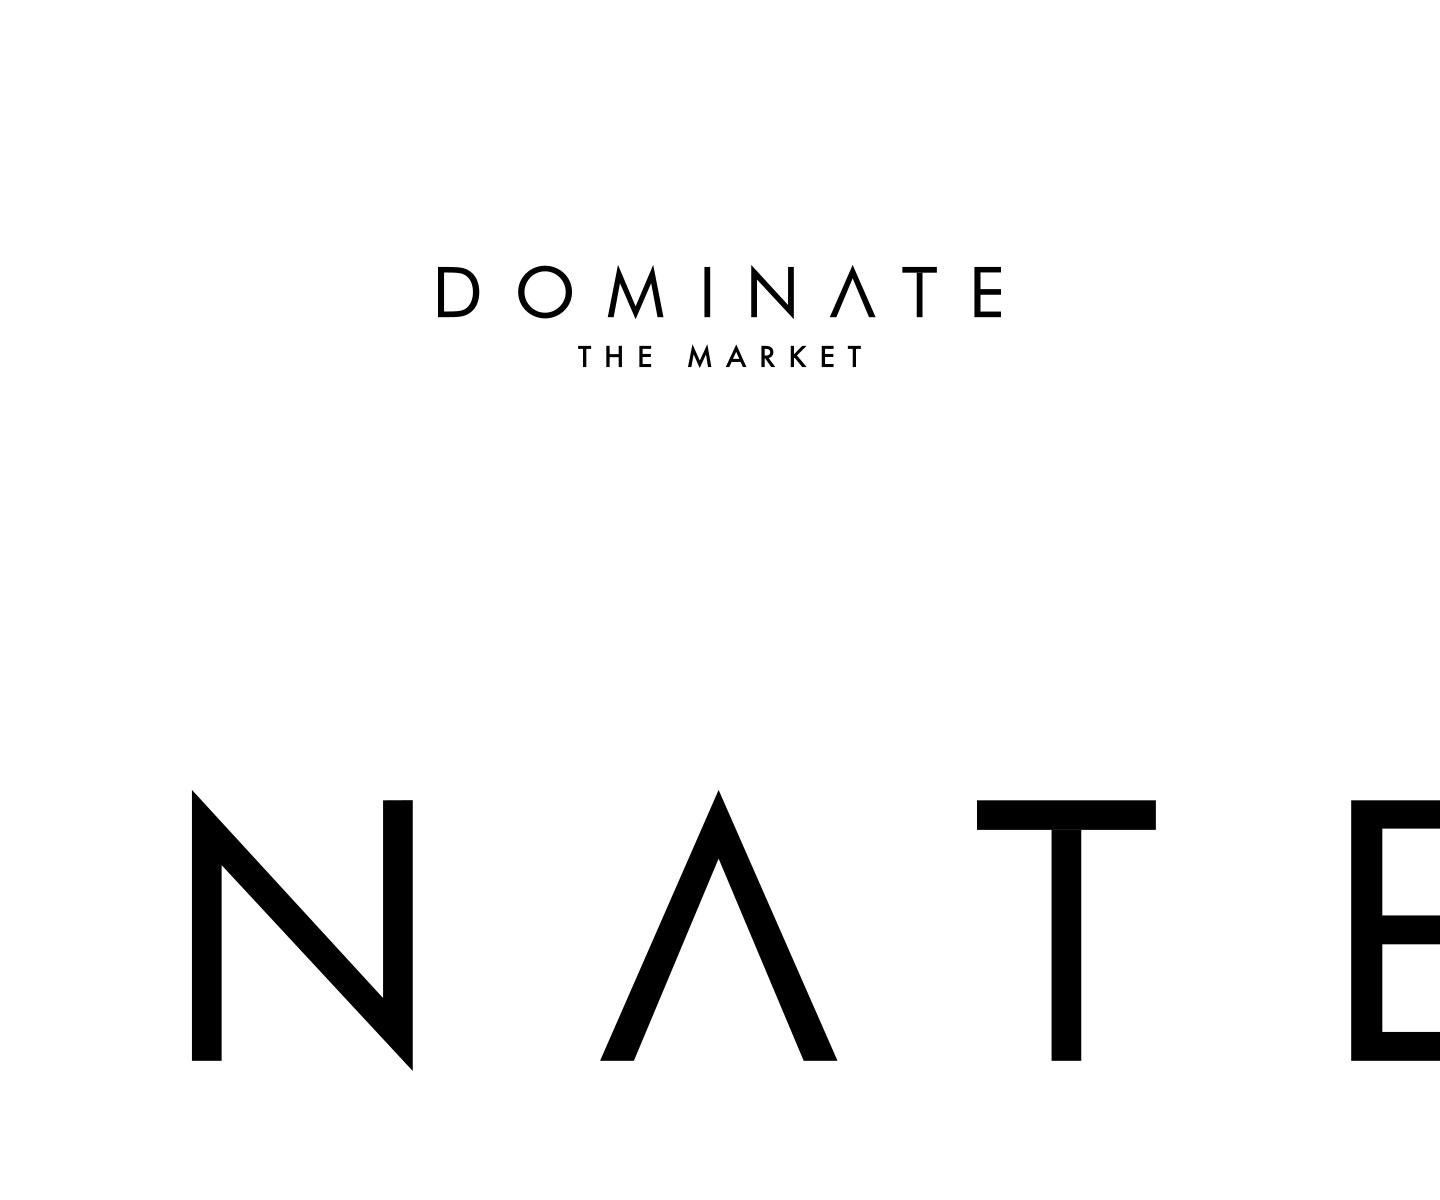 002 logo dominate the matket grafico milano nicola chaubet